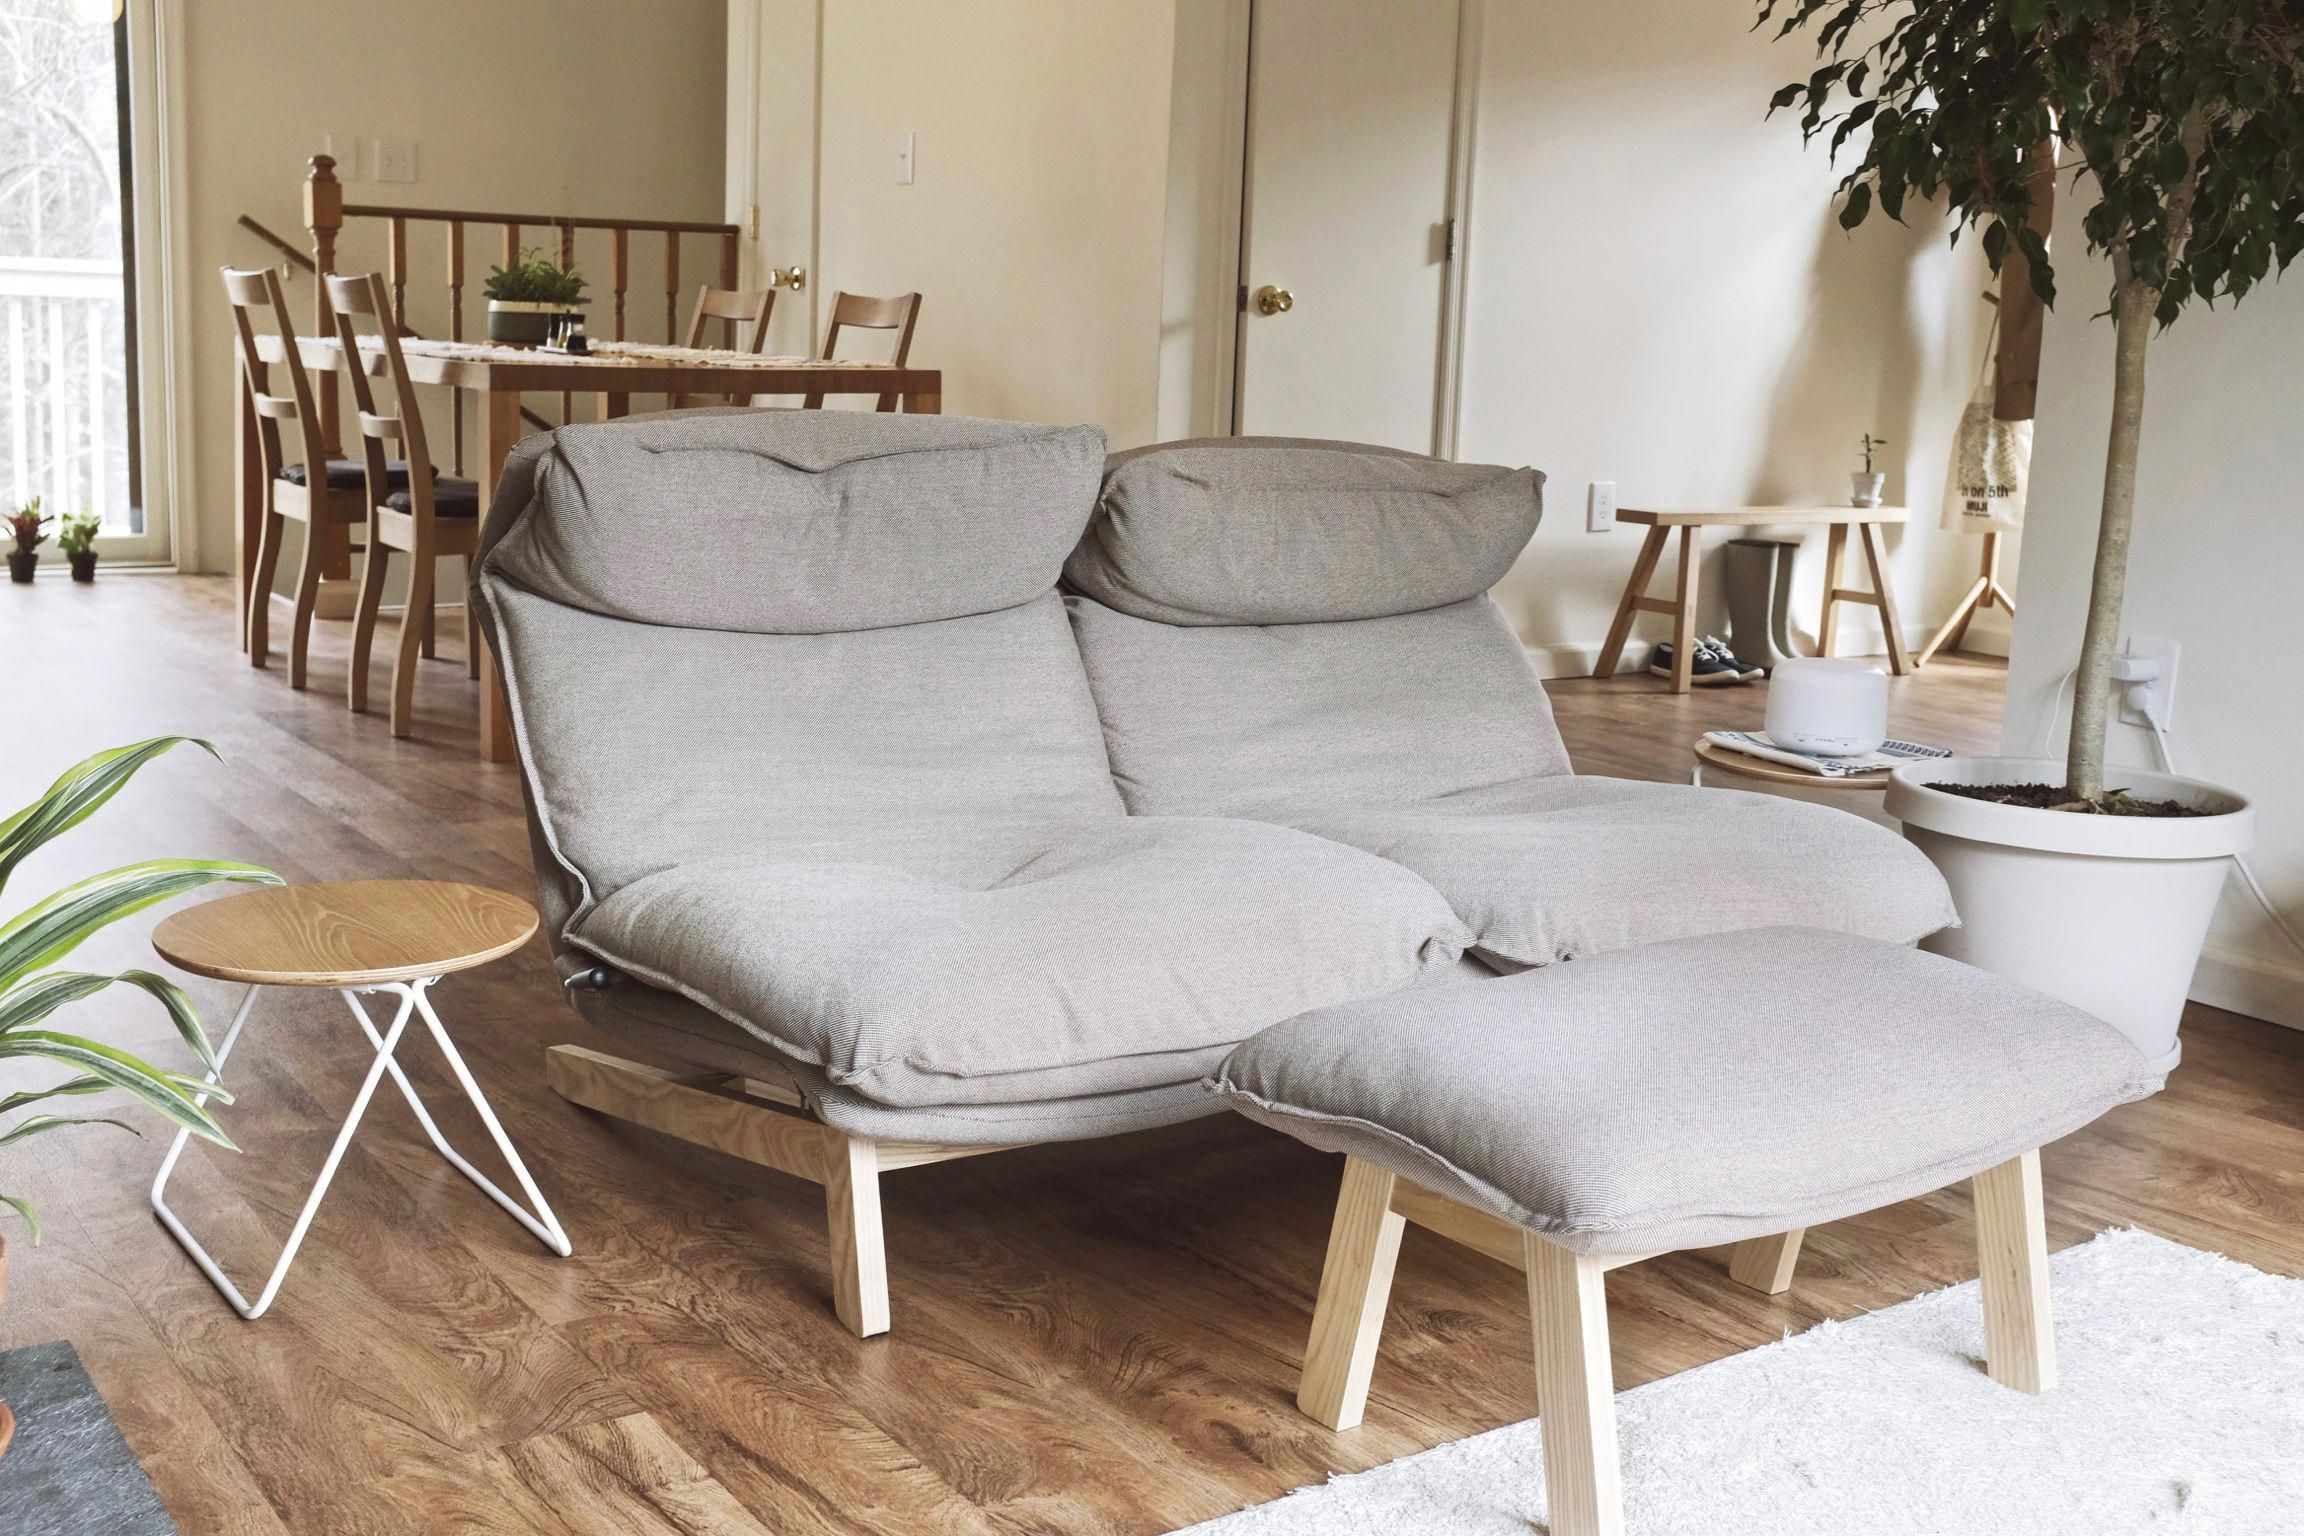 Muji S Reclining Sofa Is The Most Comfortable Piece Of Furniture Ever Invented The Texture Of The Quality Living Room Furniture Minimalist Sofa Muji Furniture